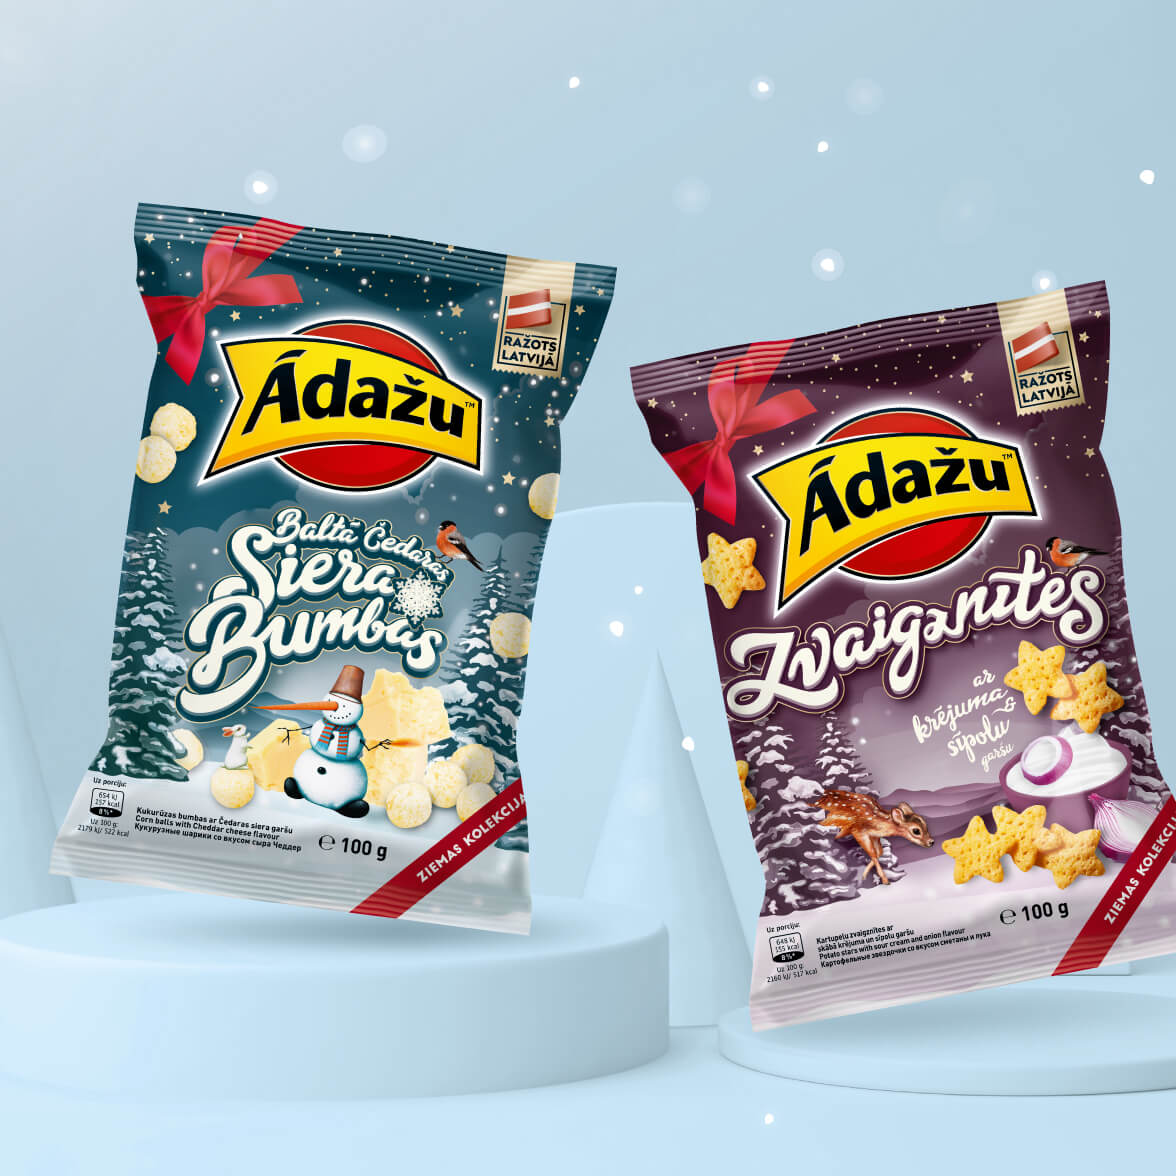 Ādažu Cheese balls Winter edition - packaging design